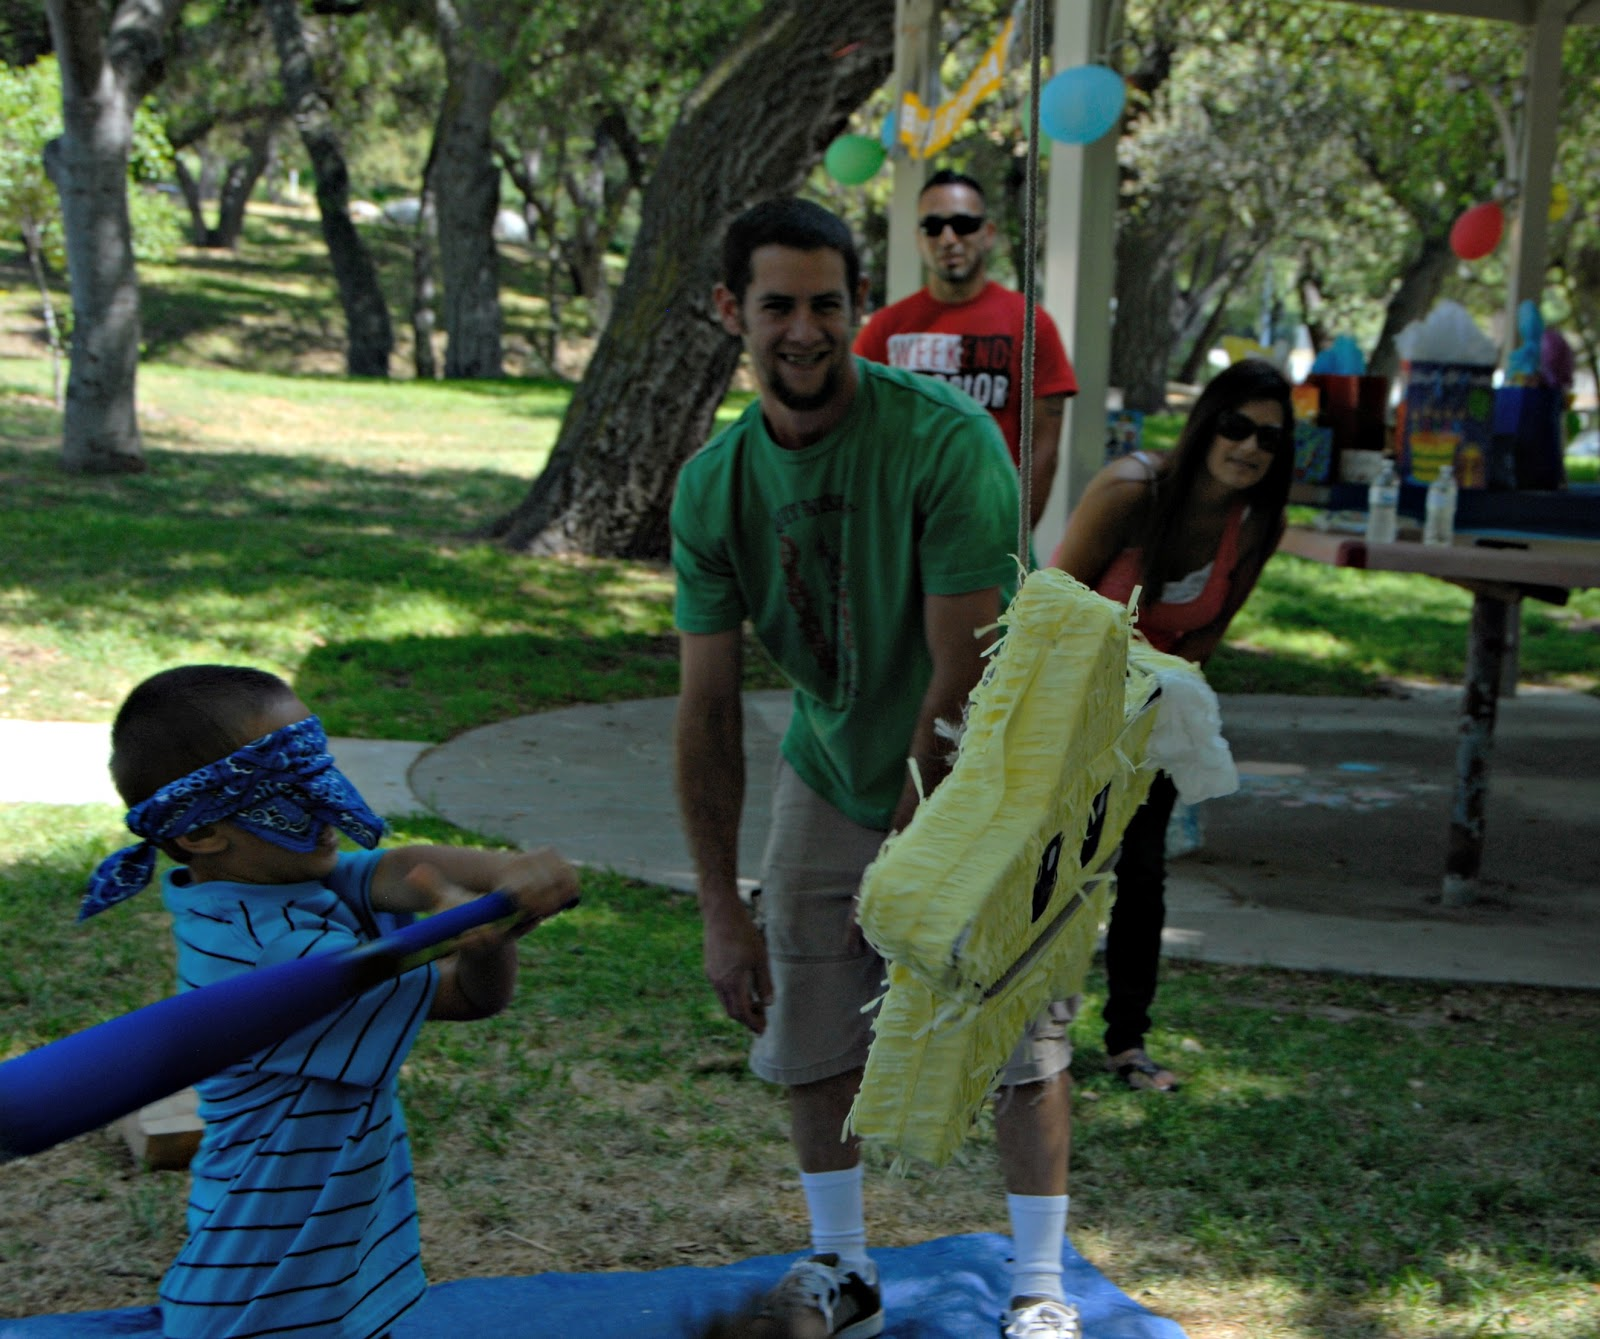 Taking a swing at the Pinata